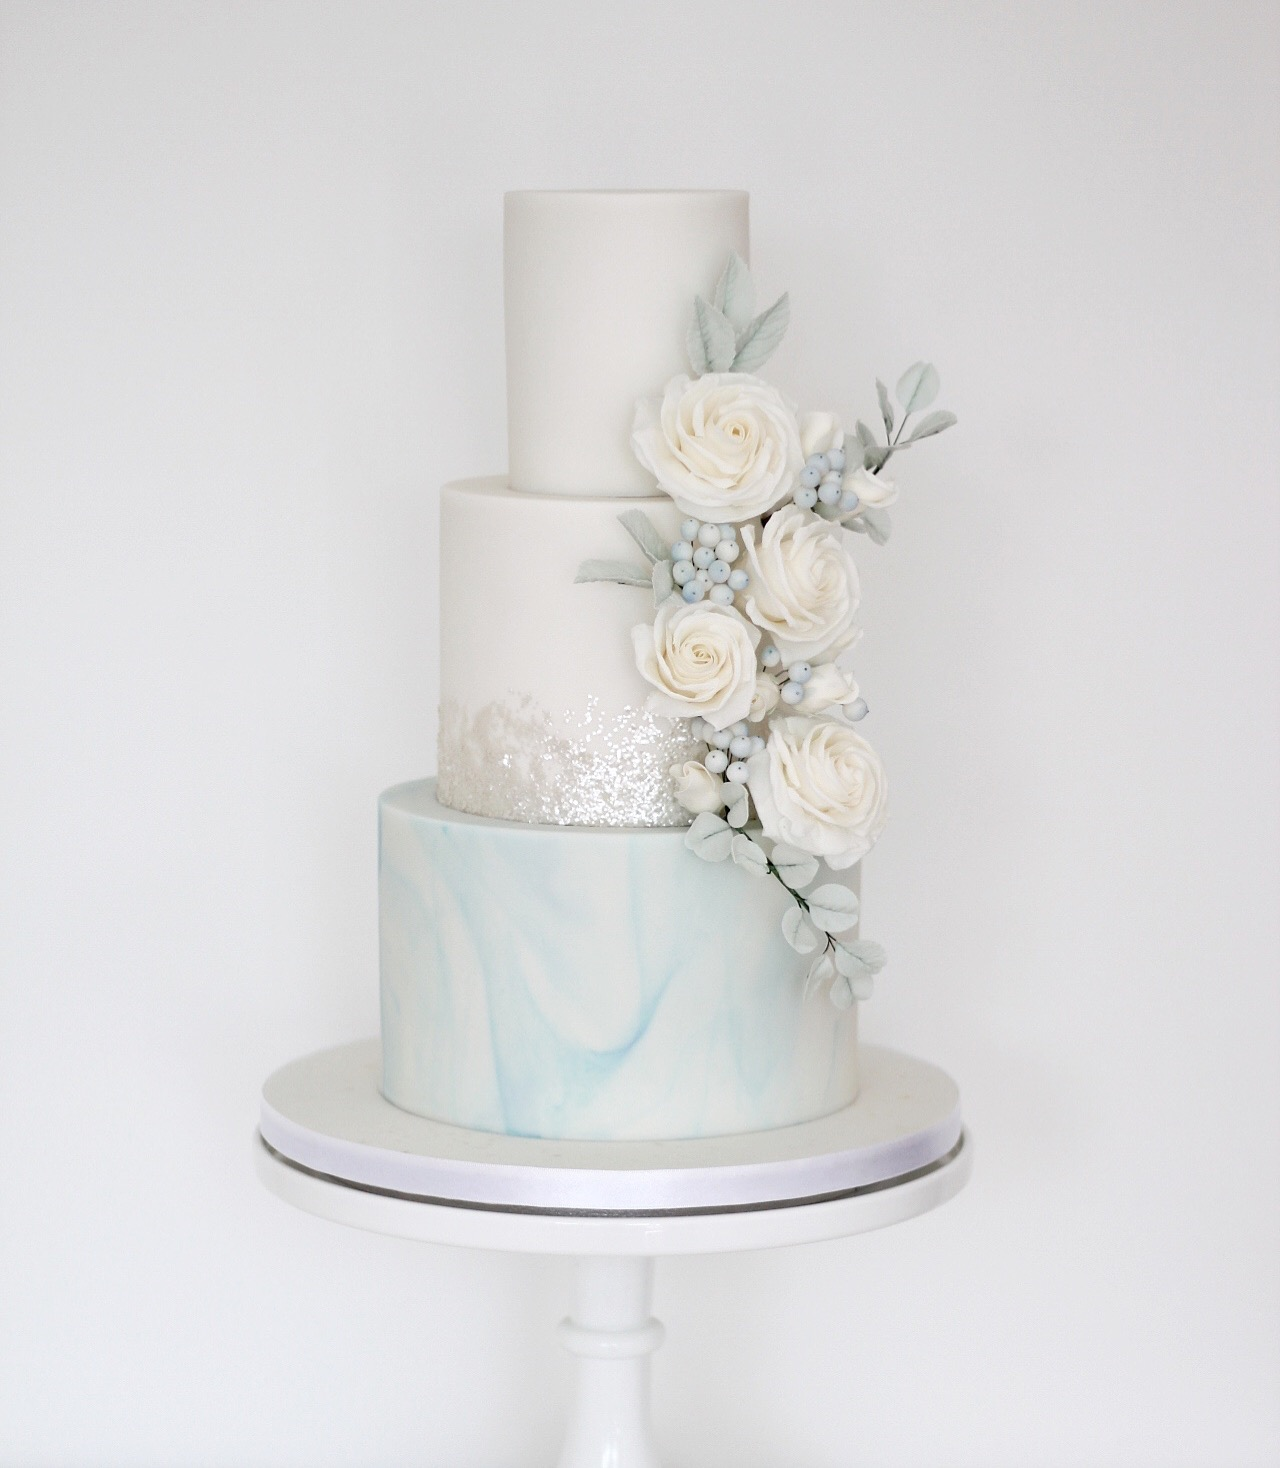 Pale-blue-marble-wedding-cake.JPG